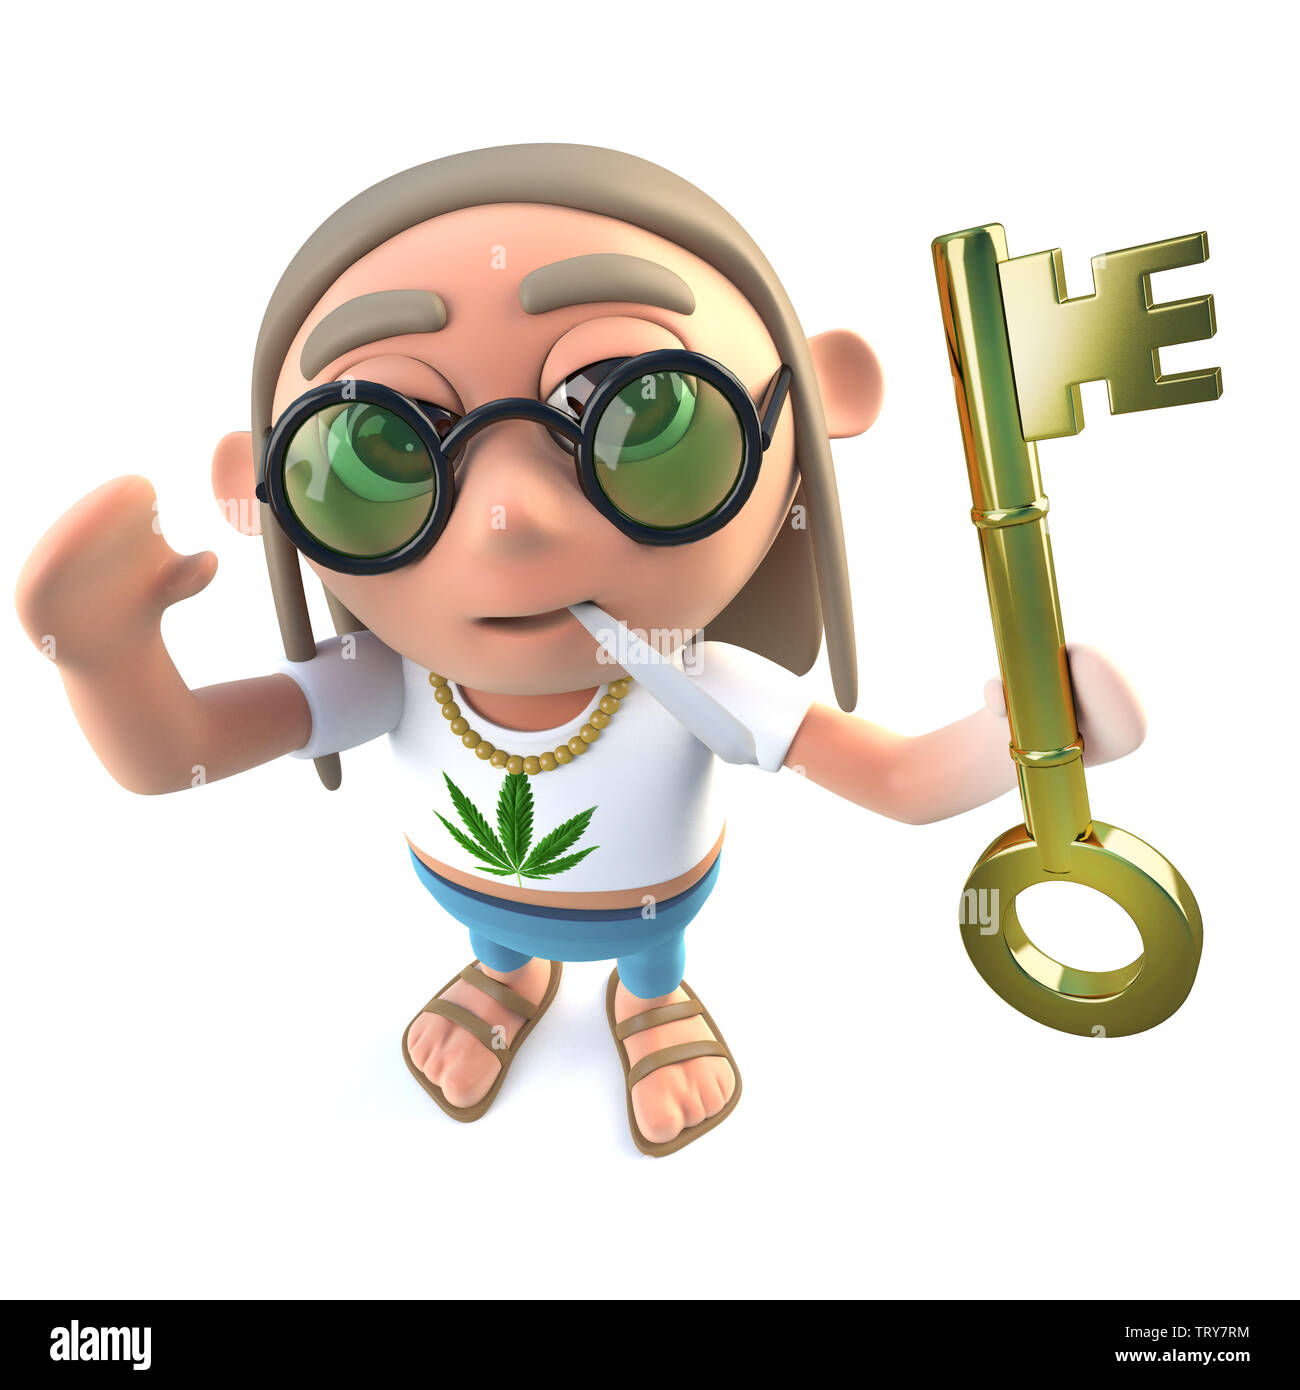 3d render of a funny cartoon hippy stoner character holding a gold key symbolising success stock photo alamy https www alamy com 3d render of a funny cartoon hippy stoner character holding a gold key symbolising success image255681096 html